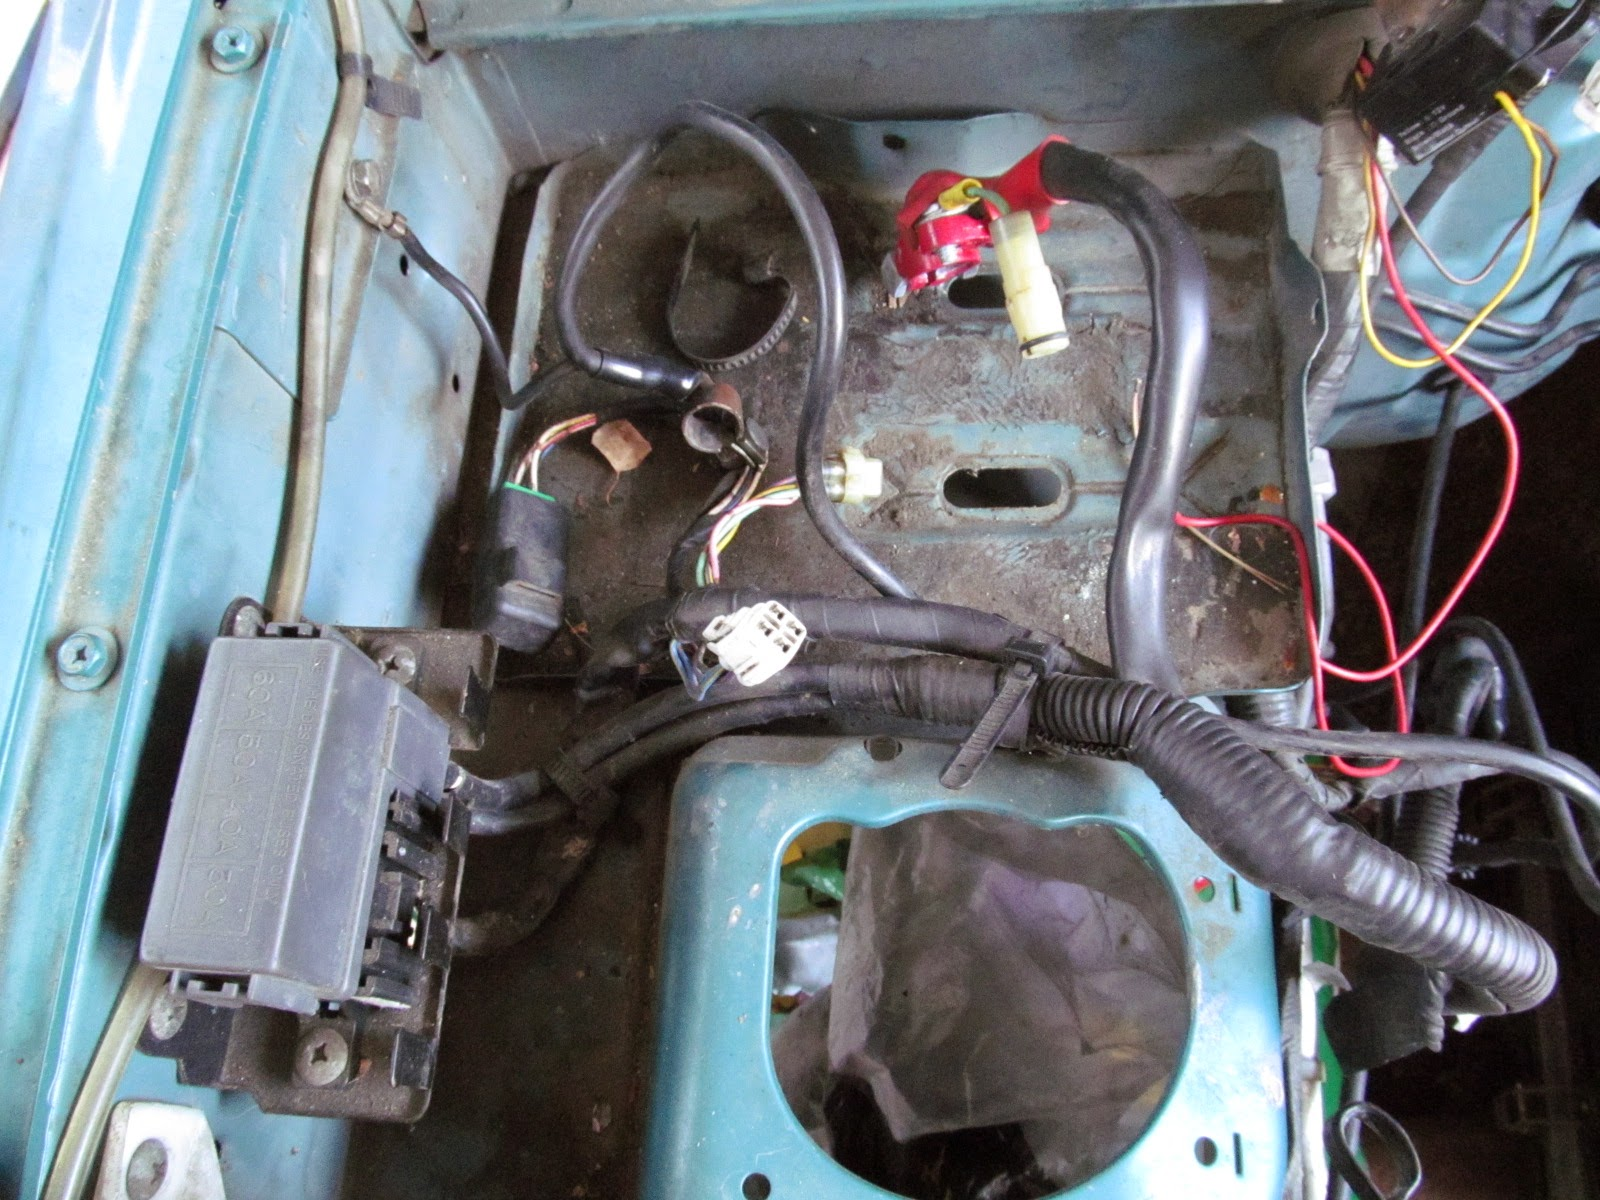 Mikes Projects 2014 1998 Suzuki Sidekick Power Window Fuse Box The Wouldnt Fit Through Hole In Firewall Anyway You Work Each Connector One At A Time